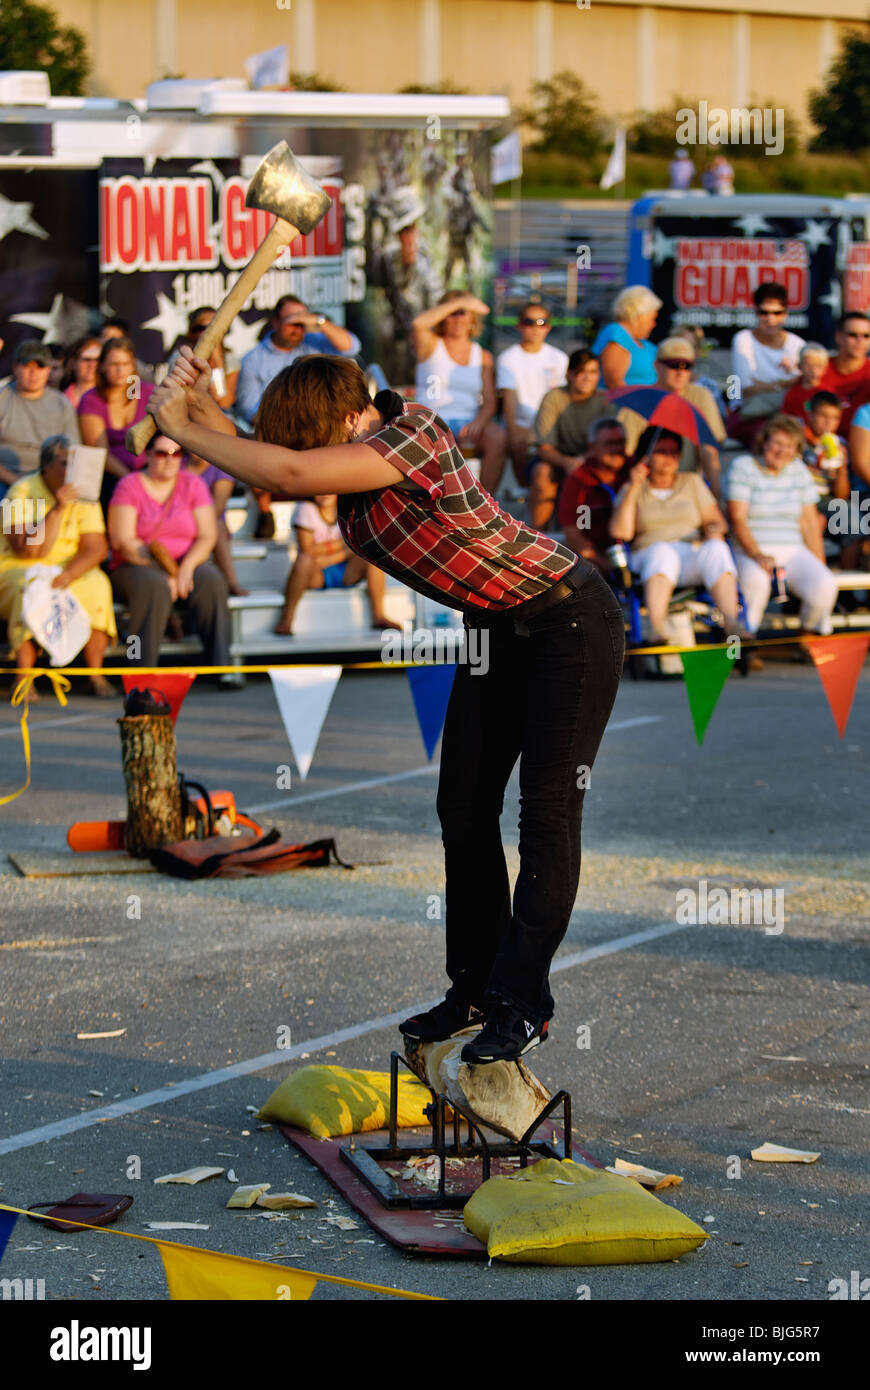 Female Lumberjack Demonstrating the use of an Axe at the 2009 Kentucky State Fair in Louisville, Kentucky - Stock Image